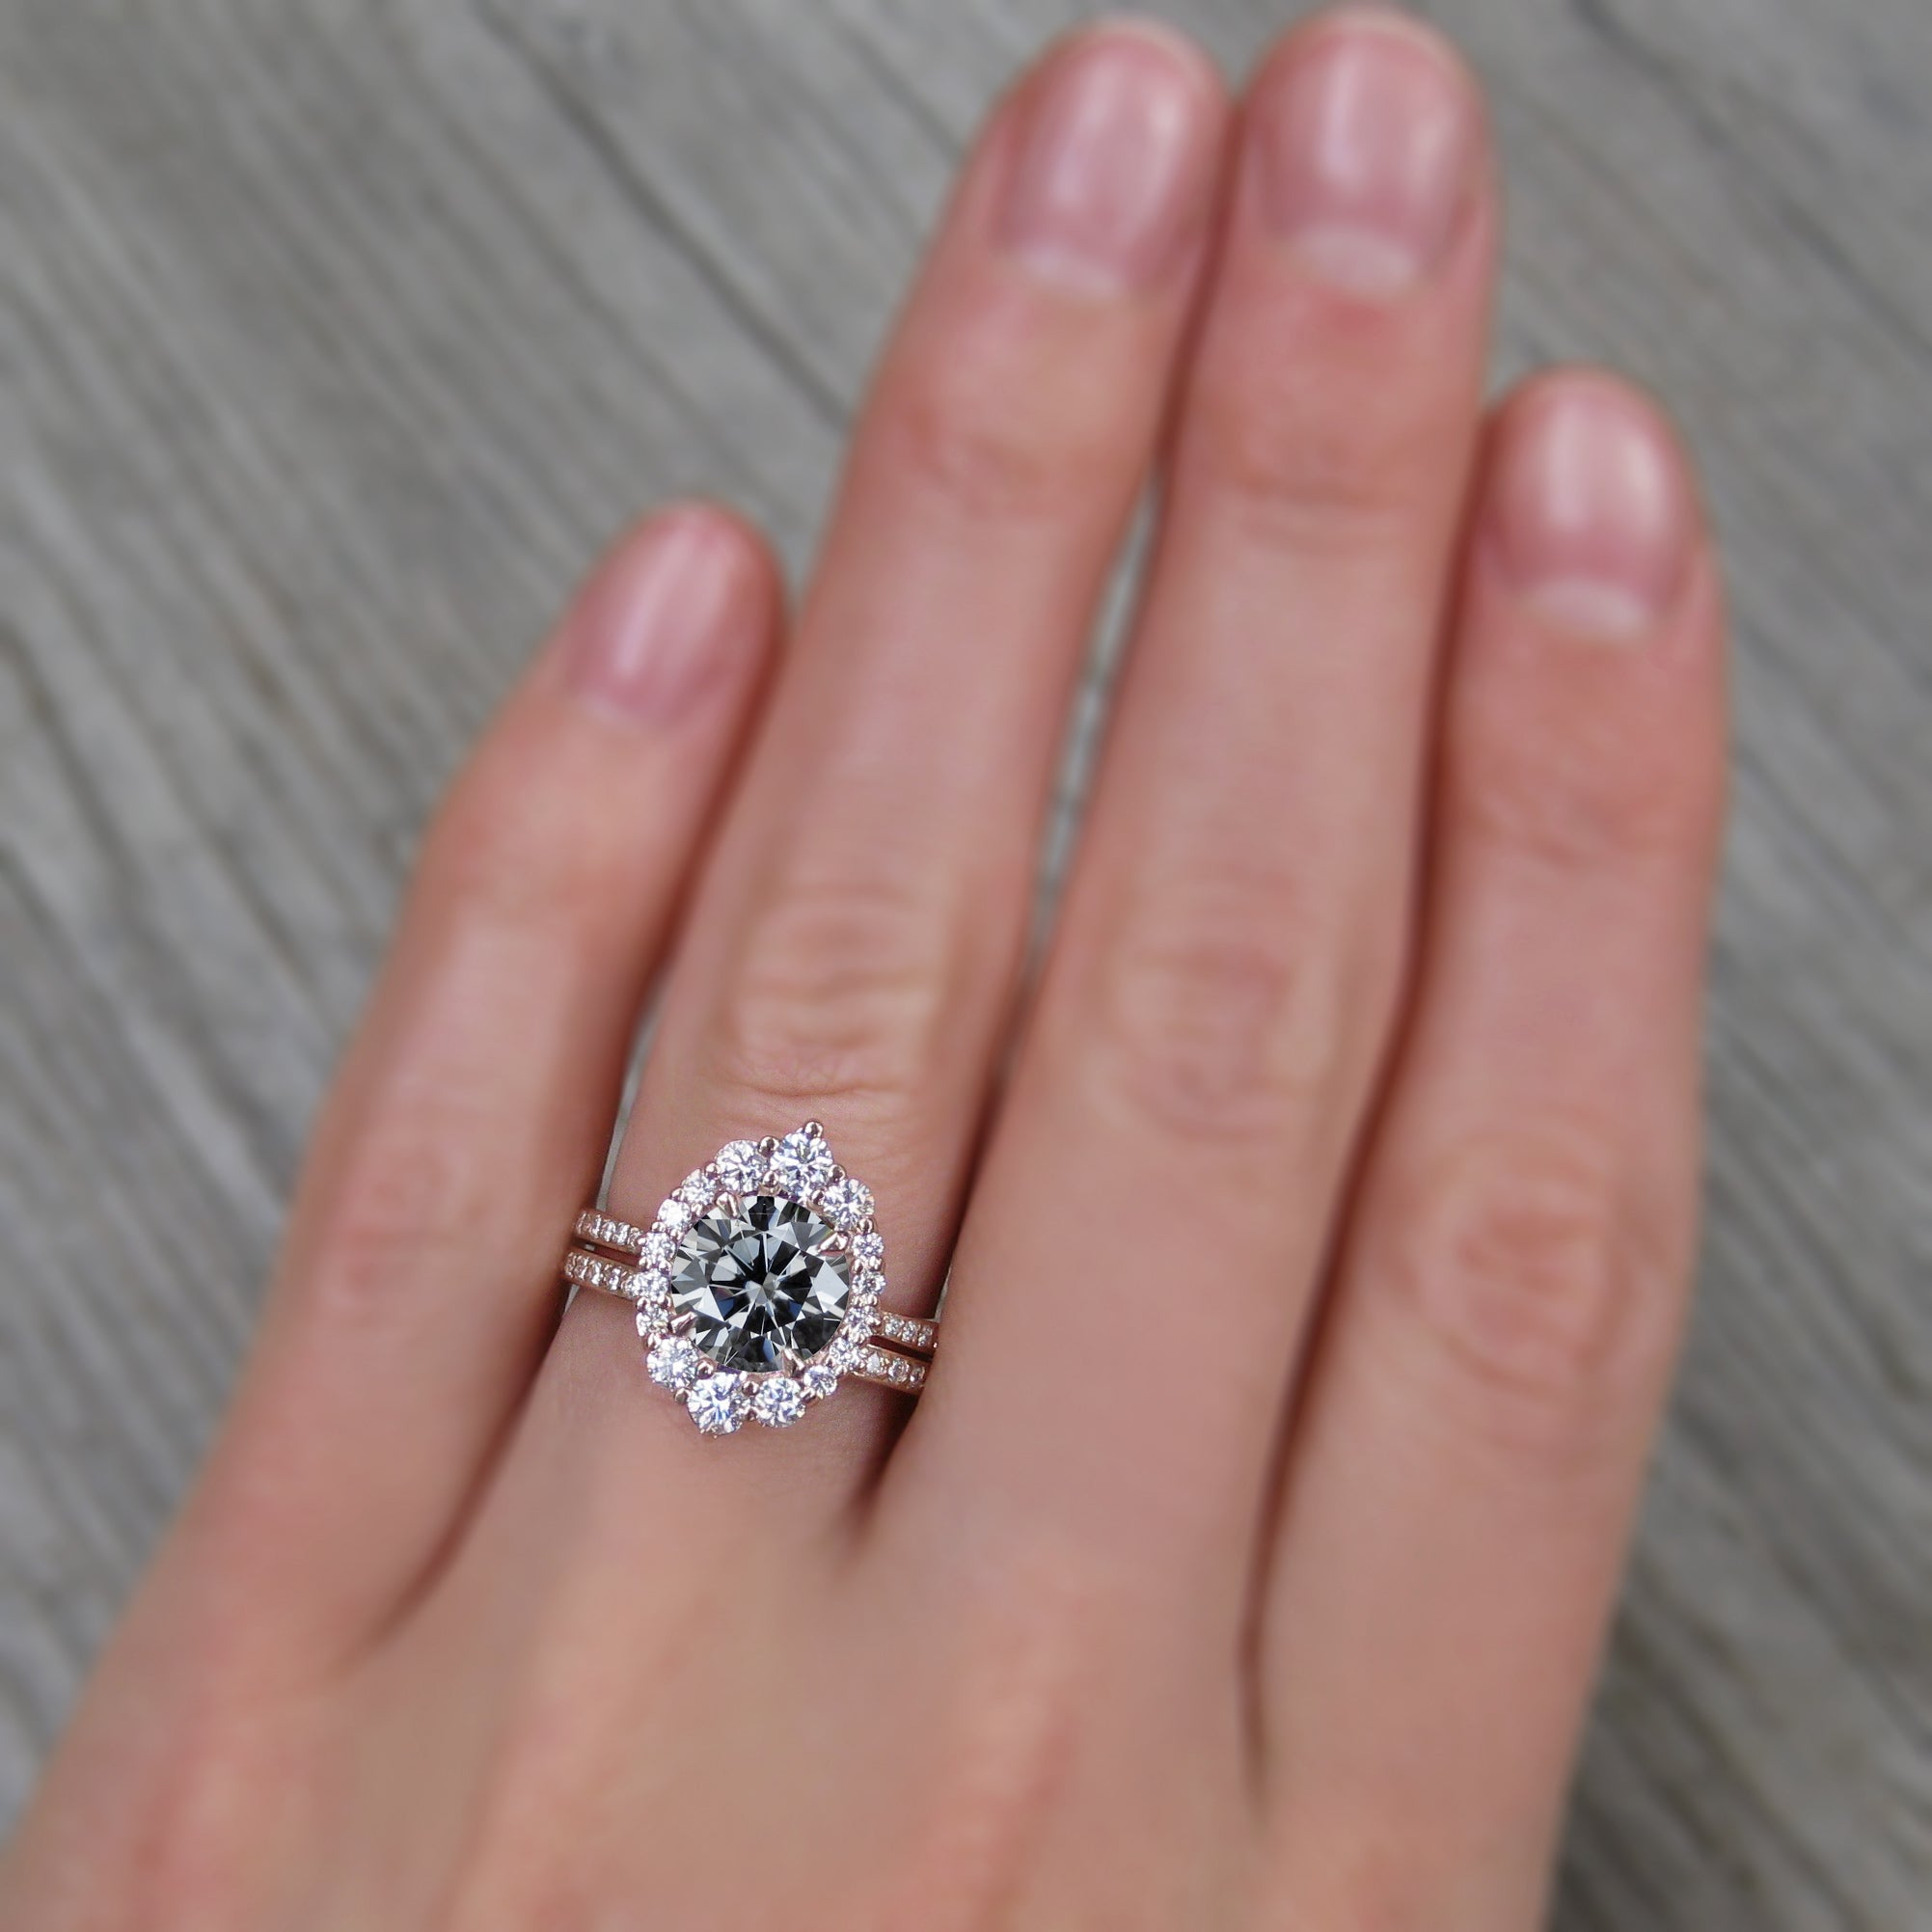 grey iconic moissanite engagement ring with diamond halo pavé